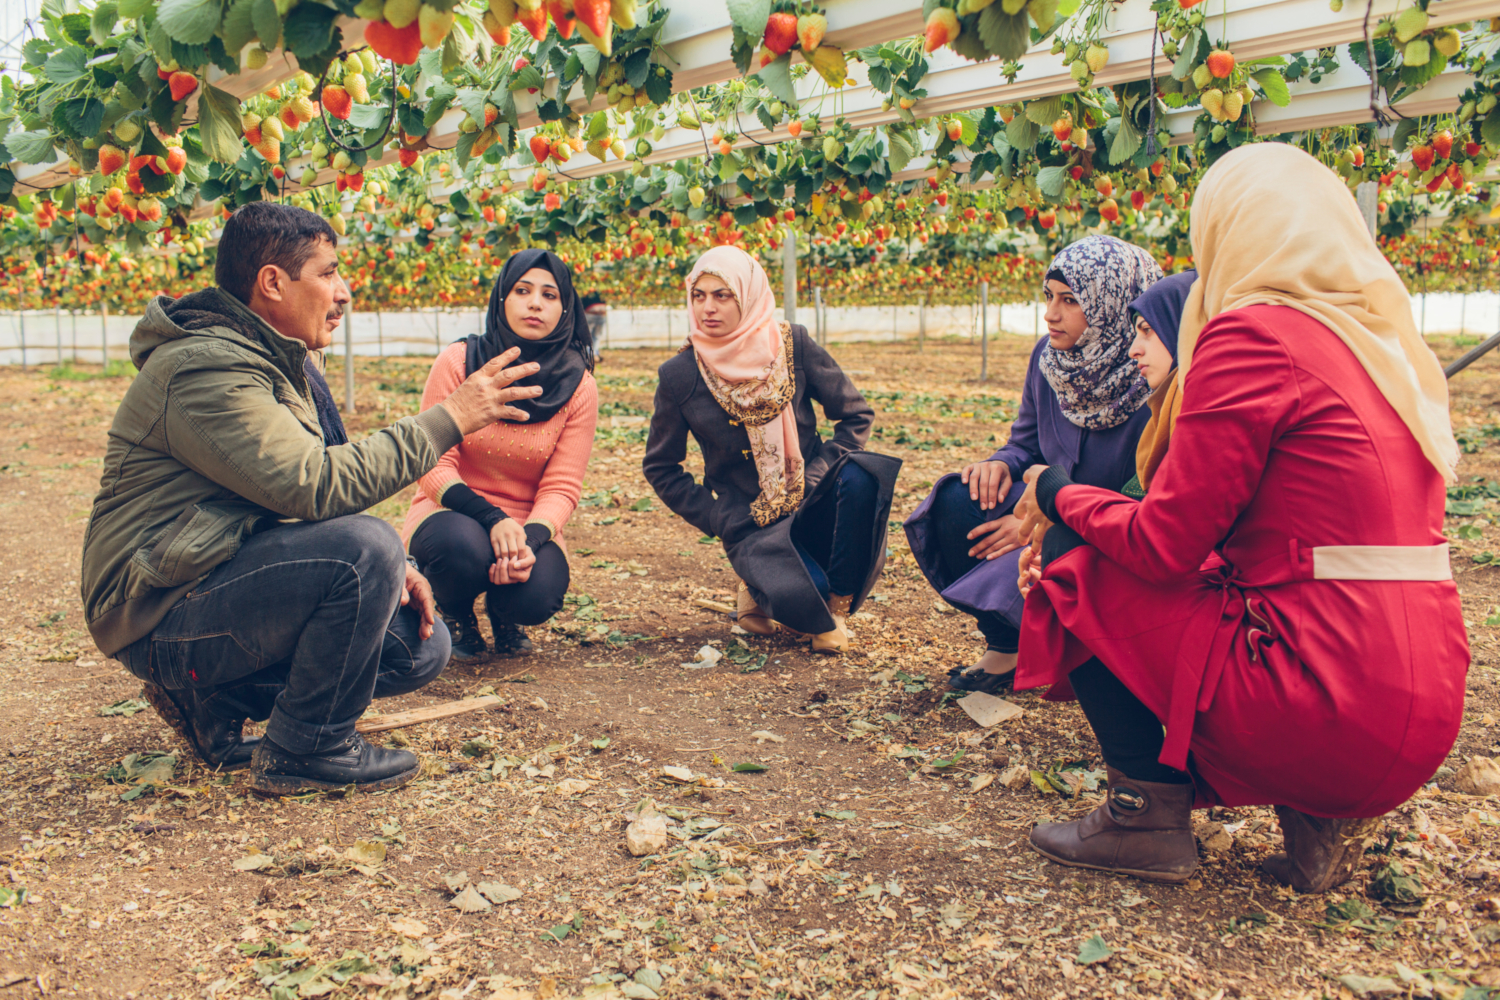 Teaching the next generation. Osamah Abu Al-Rub is one of only 20 strawberry farmers in the West Bank. The USAID Compete Project - which helps Palestinian farmers introduce a range of new crops with high export potential - helped him transition half of his strawberry crop from an open field into modern hanging systems in greenhouses. A new computerized system controls and monitors water and fertilizer levels for optimal output. As a result, he is able to produce ten times more strawberries than those grown the traditional way. (credits: Bobby Neptune for USAID / Flickr Creative Commons Attribution-NonCommercial 2.0 Generic (CC BY-NC 2.0))